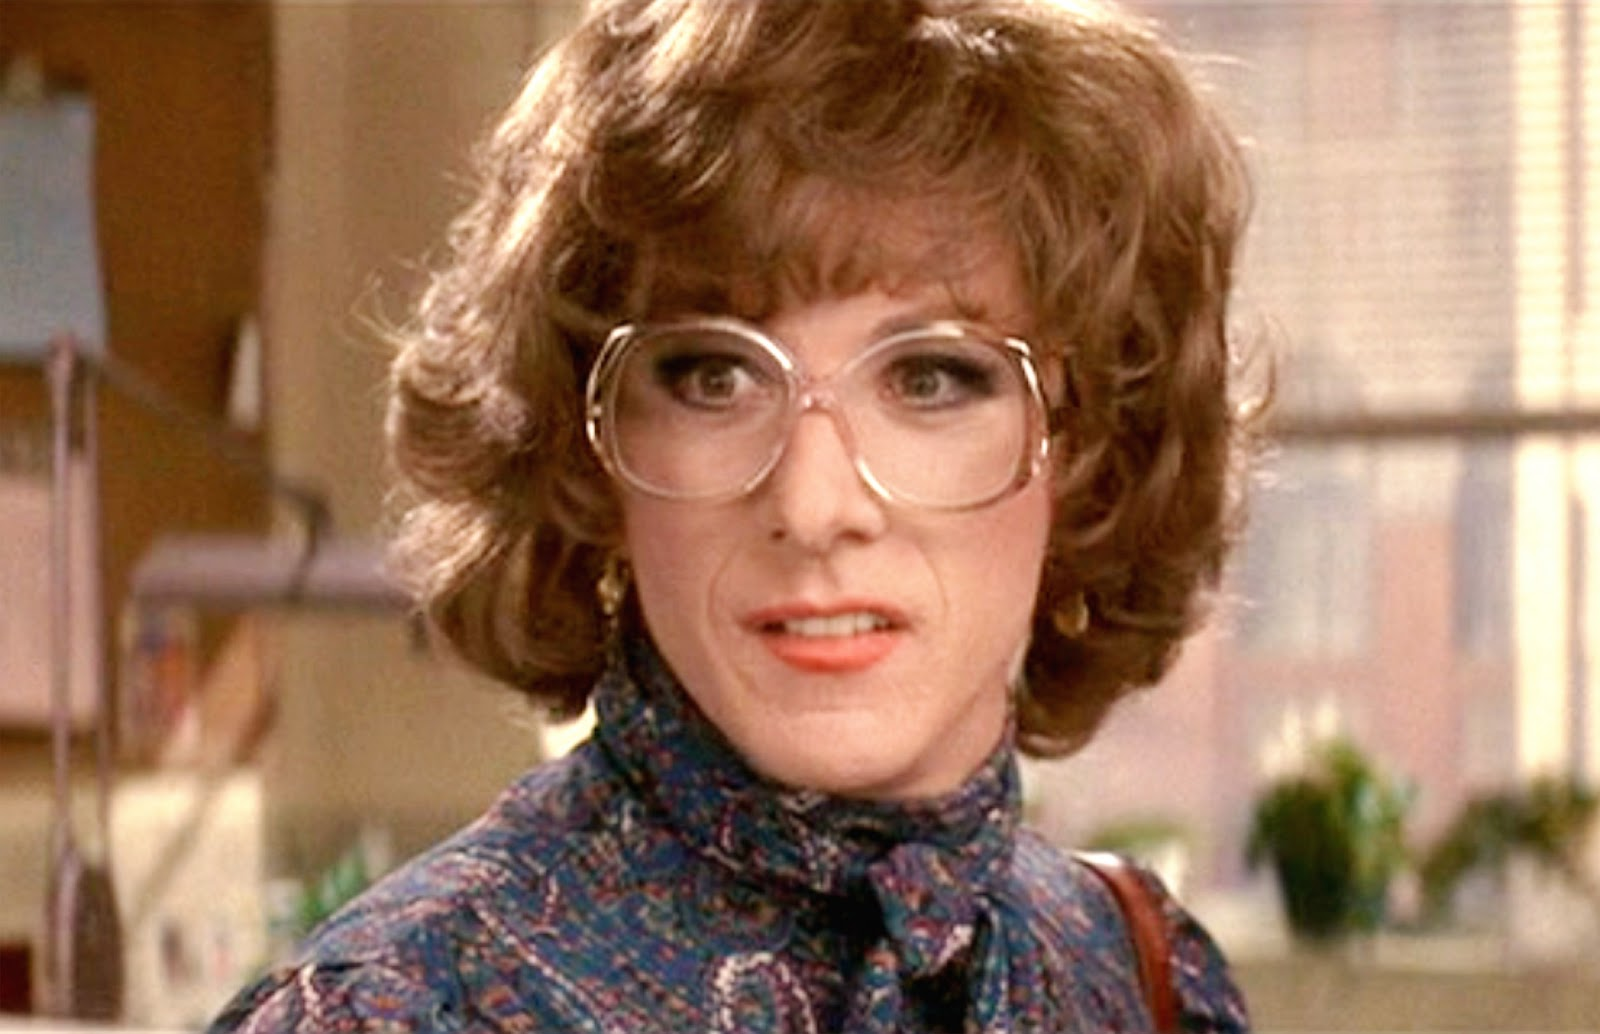 a movie review about tootsie played by dustin hoffman The then 48-year old dustin hoffman played a 63-year old wily loman wily is a frustrated elderly salesman obsessed with the american dream he is pushed into the thorny path to reflect on his own existence at face value.